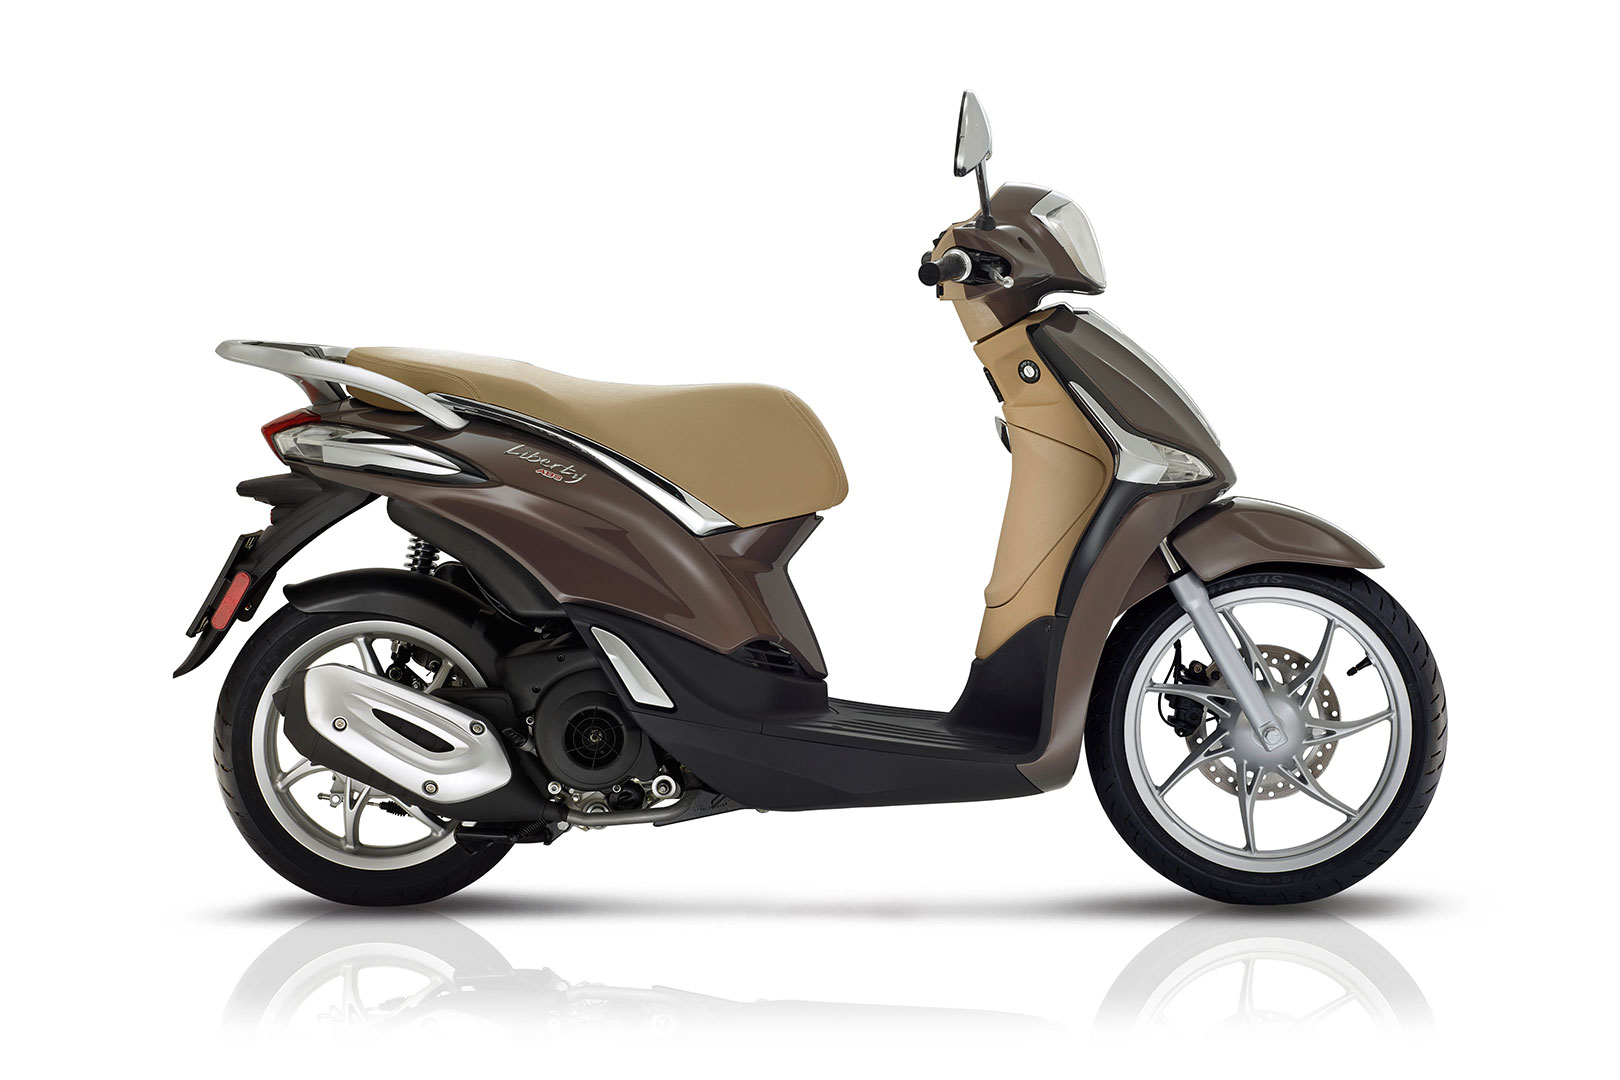 Achat Piaggio Liberty ABS 125 cm3 neuf à Nice chez Scoot Center-2